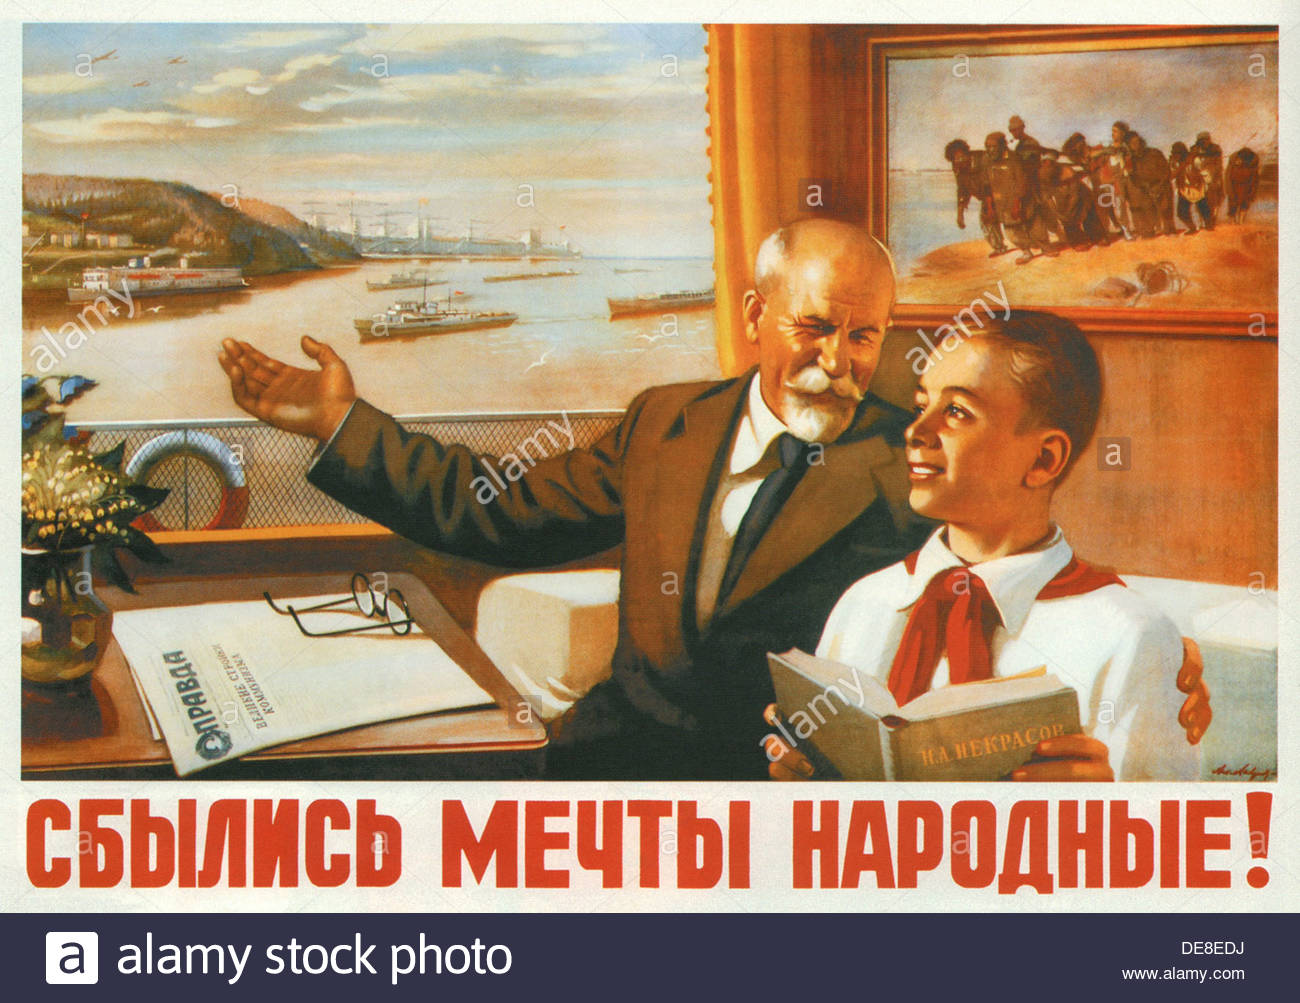 The people's dreams have come true!, 1950. Artist: Lavrov, Alexey Ivanovich (active Mid of 20th cen.) - Stock Image